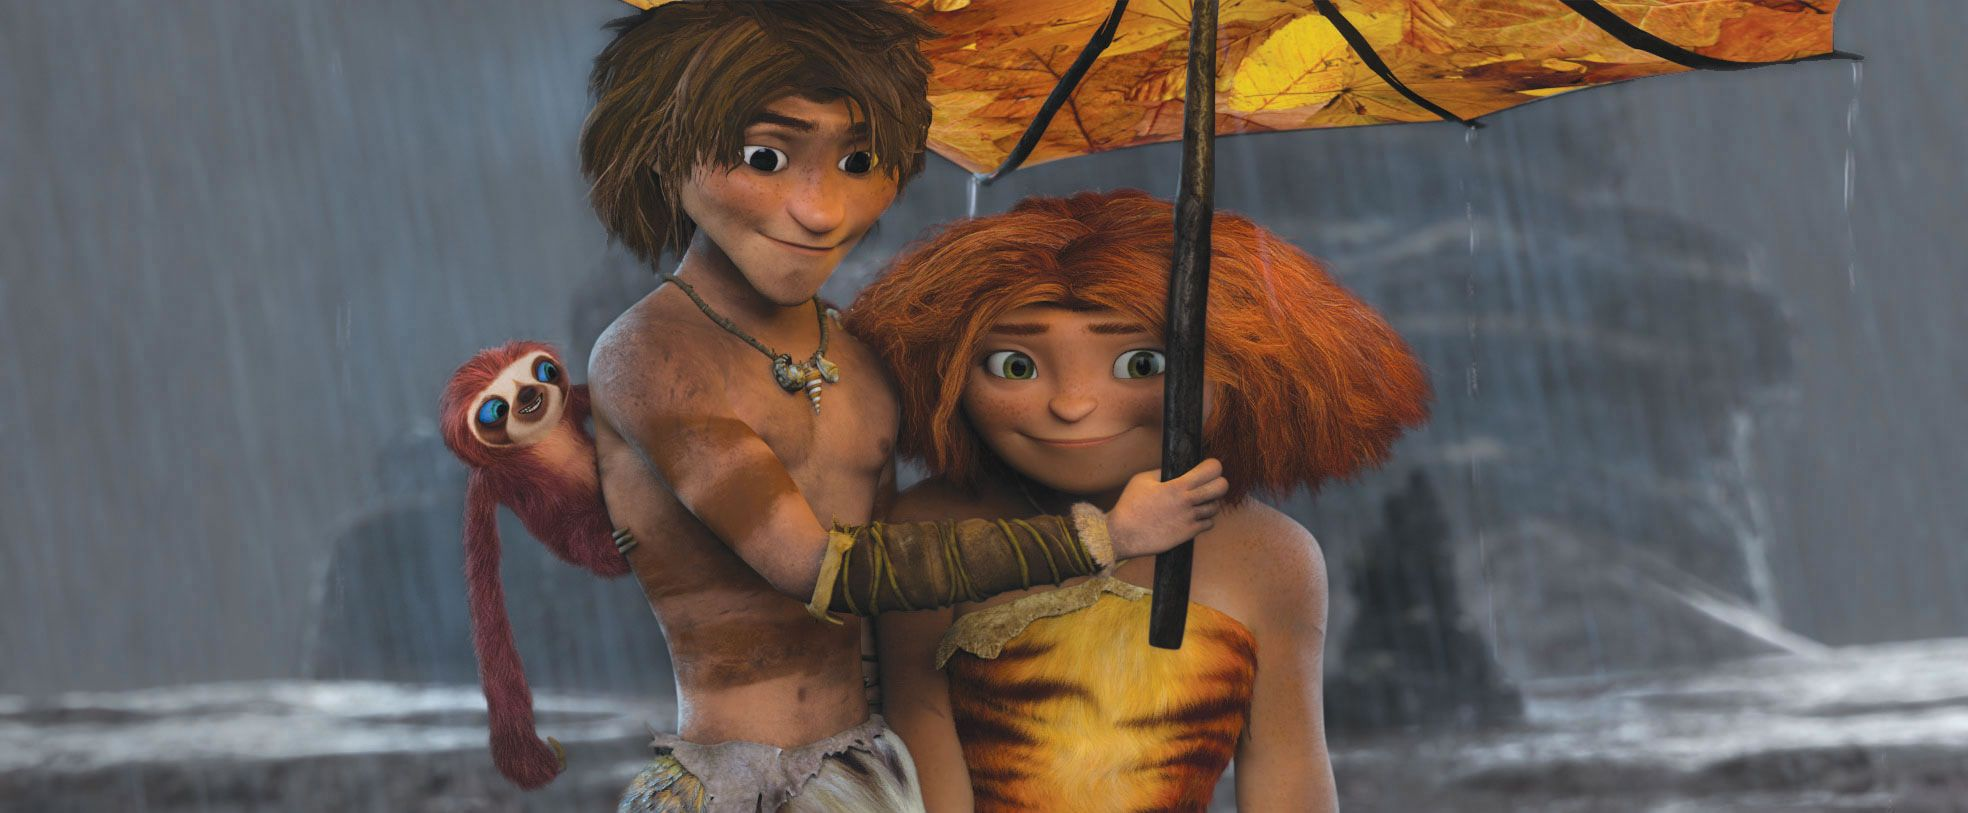 croods 2 release date confirms dreamworks animation's plans | collider